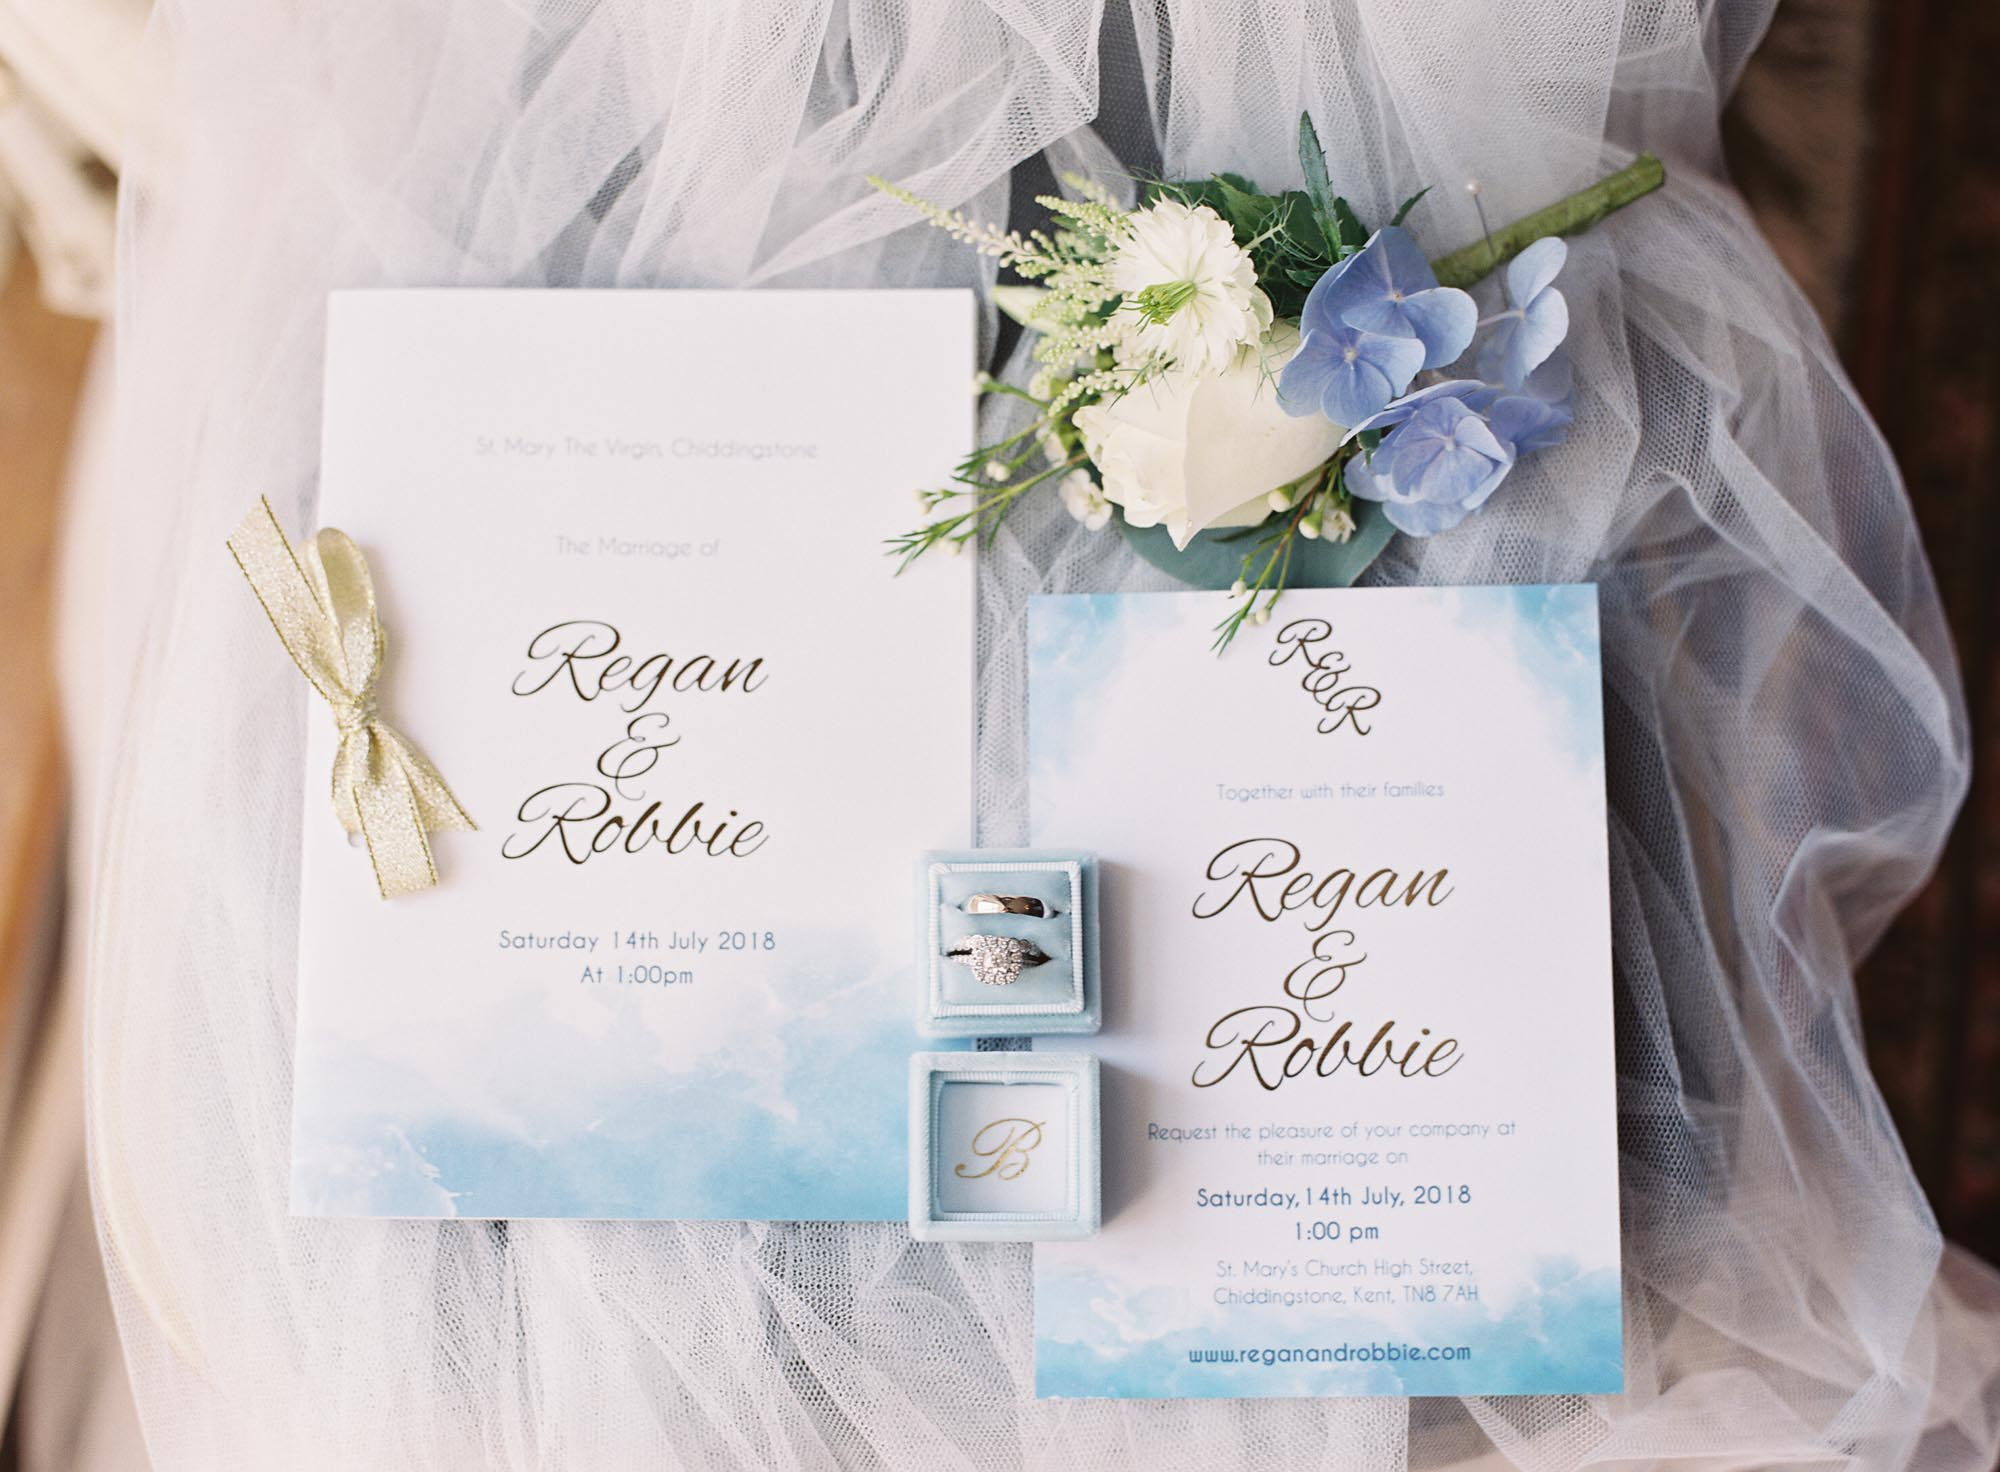 Blue, white and gold wedding stationery with engagement ring and wedding ring